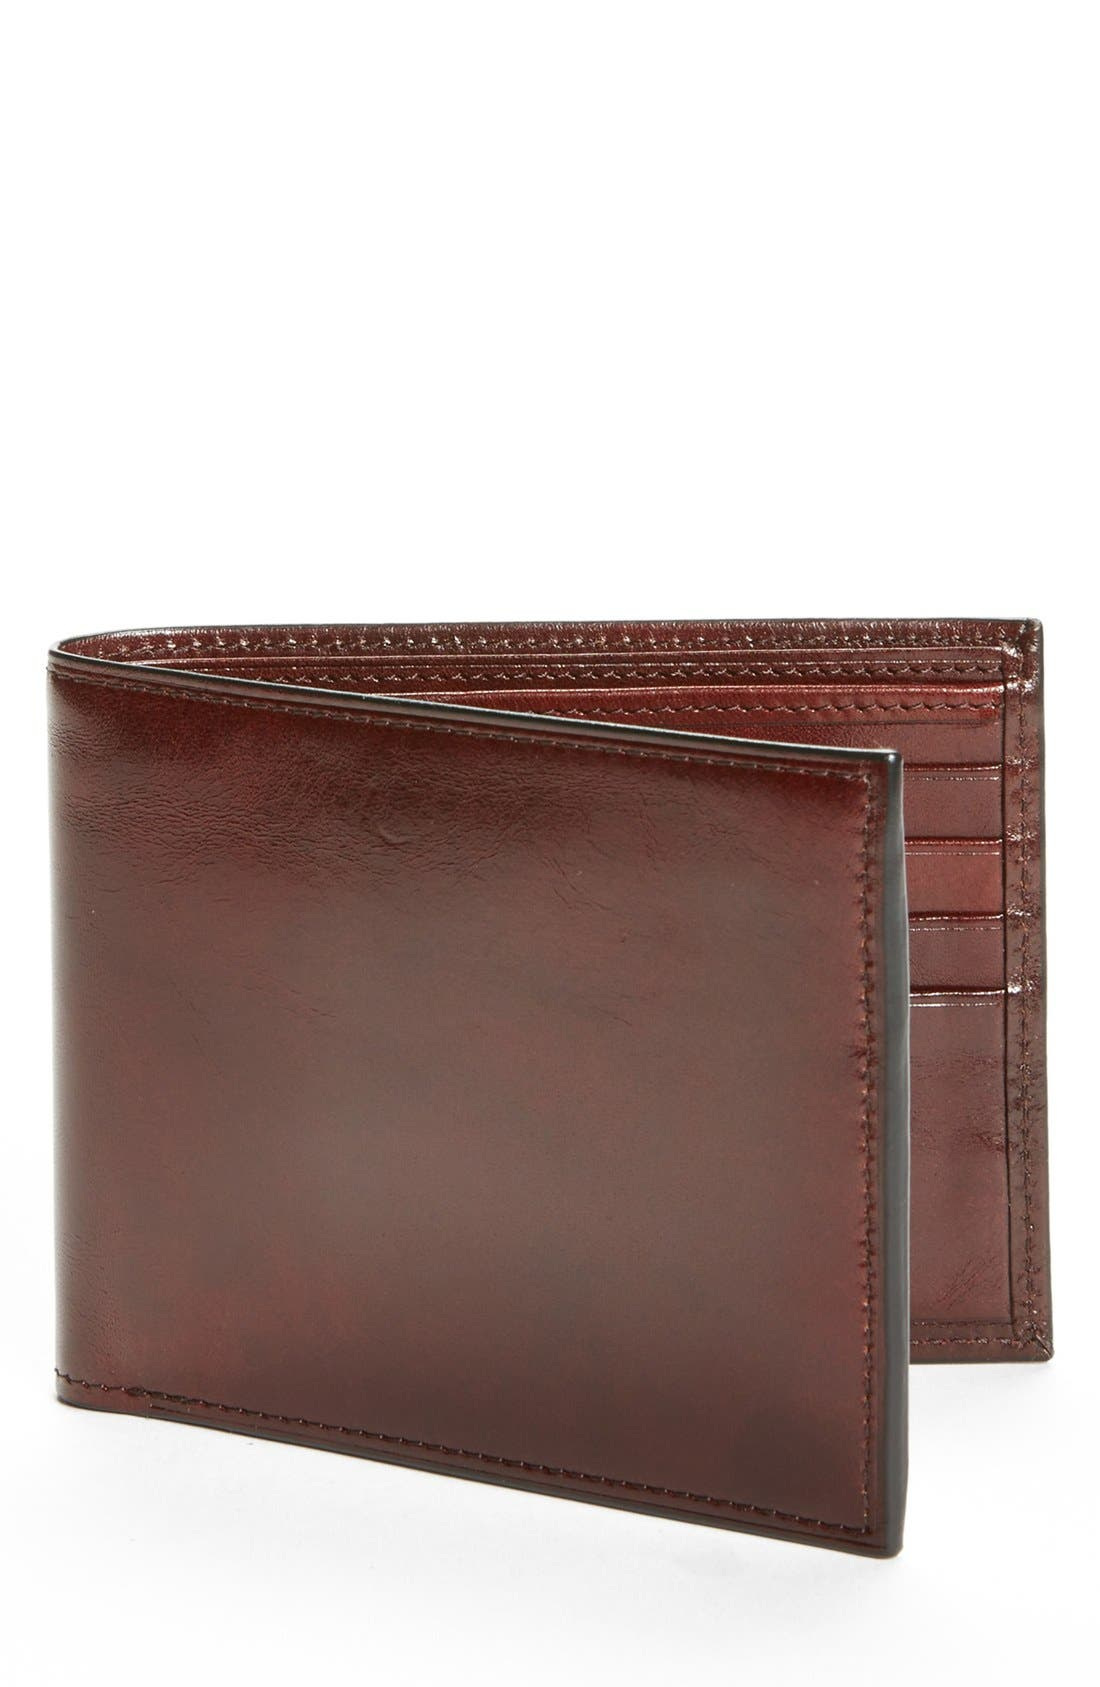 Bosca ID Flap Leather Wallet